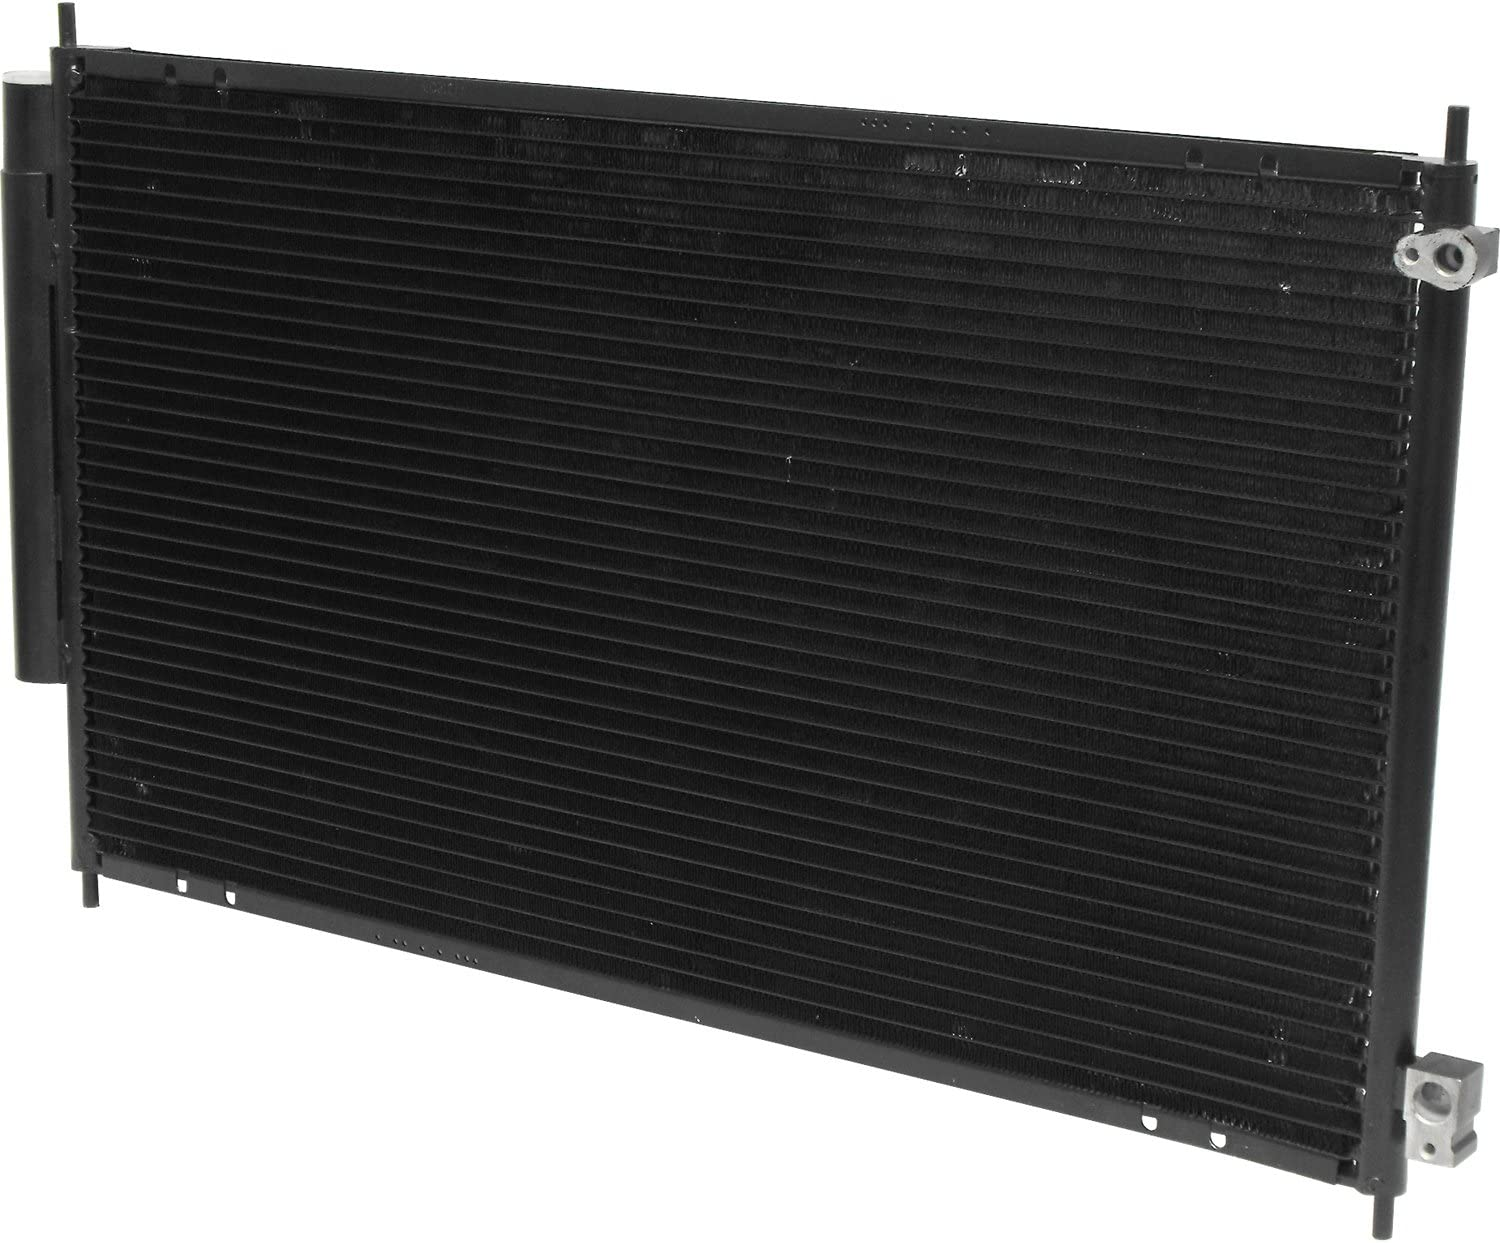 UAC CN Ranking integrated 1st place 3295PFC C New Shipping Free Condenser A